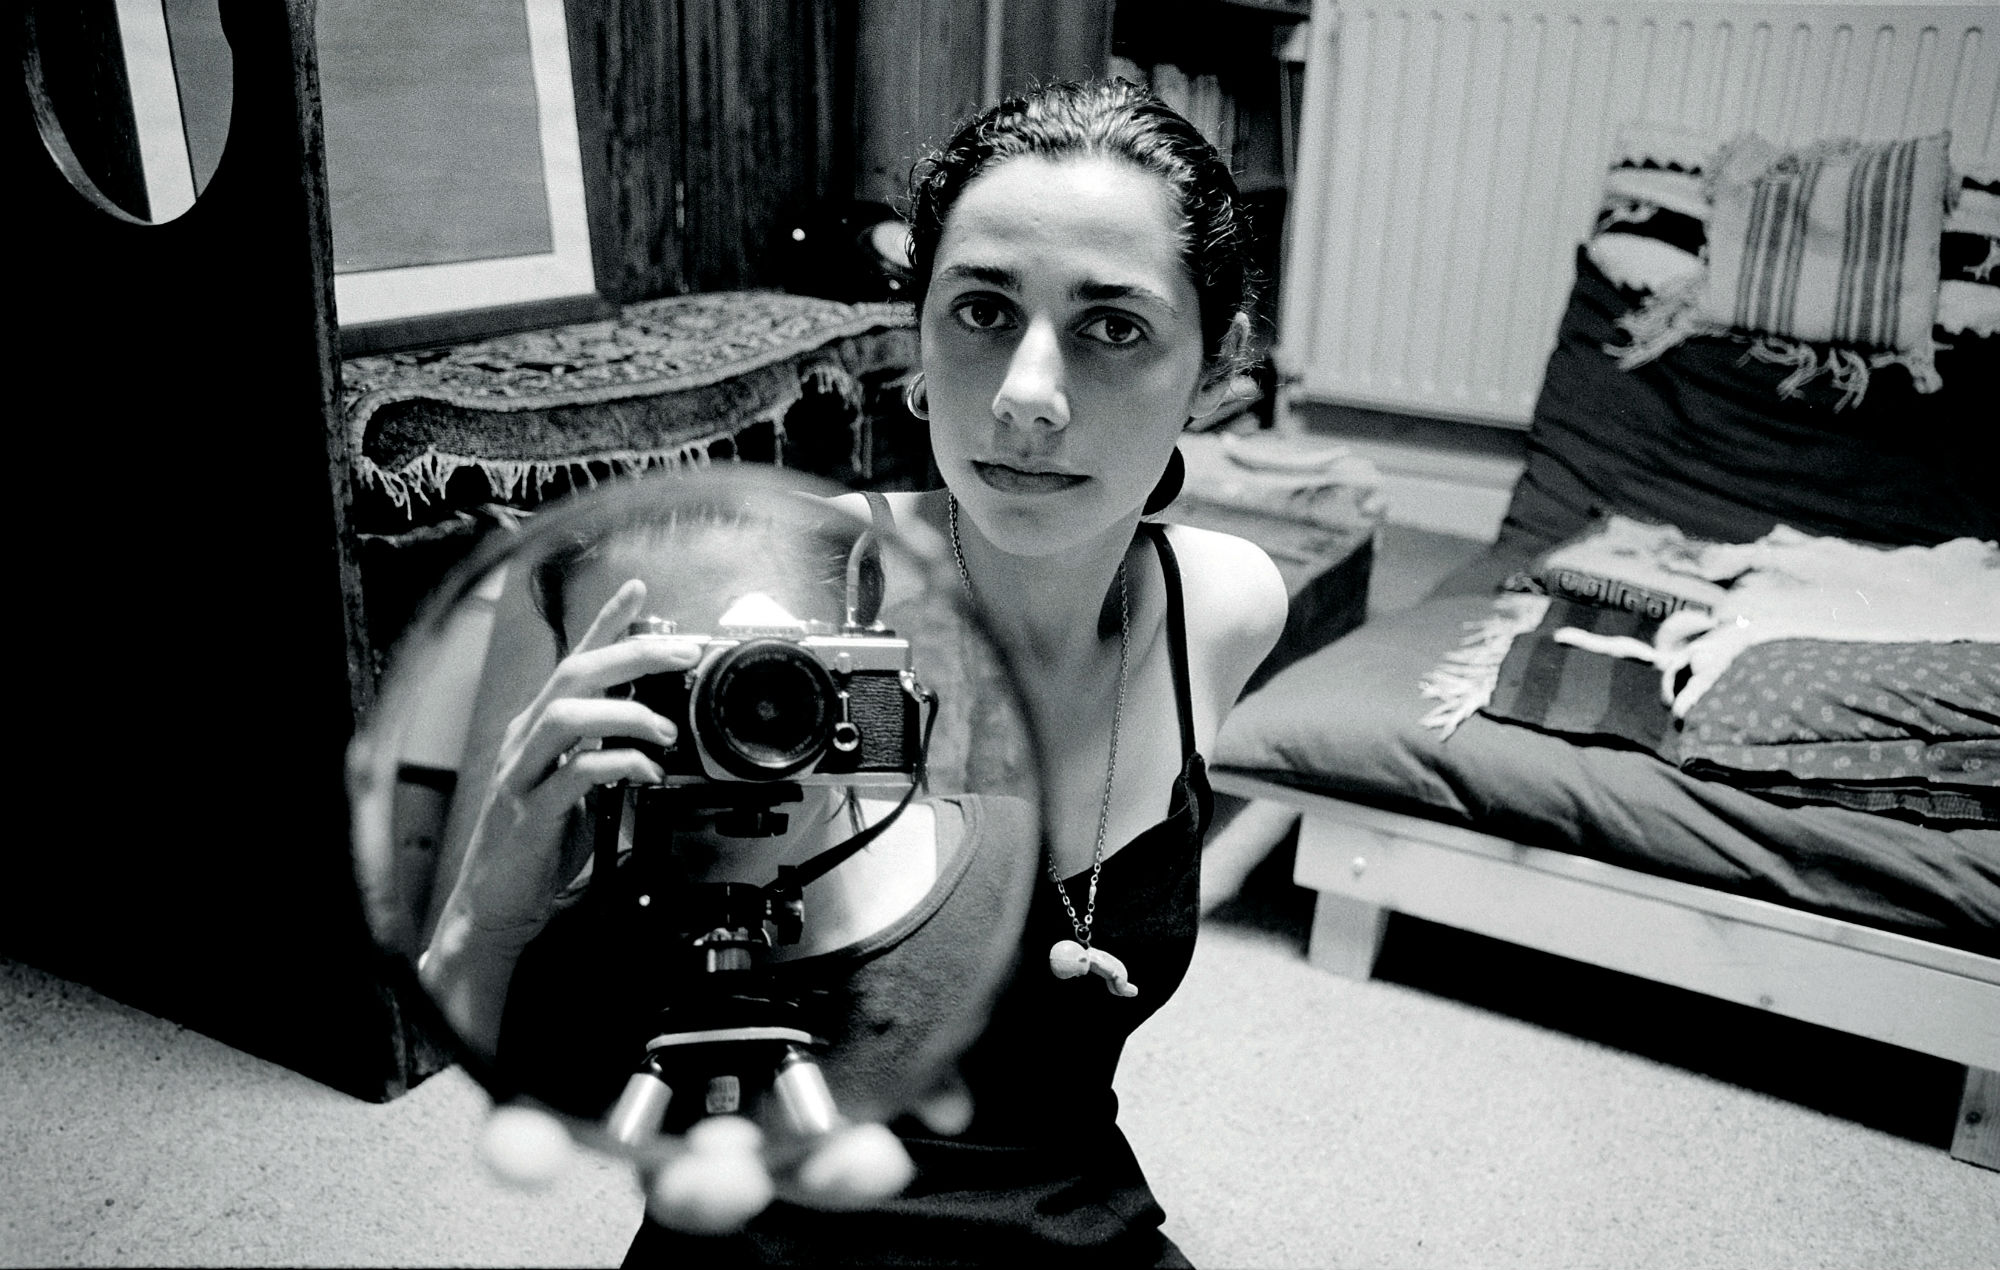 PJ Harvey's entire back catalogue is being reissued on vinyl